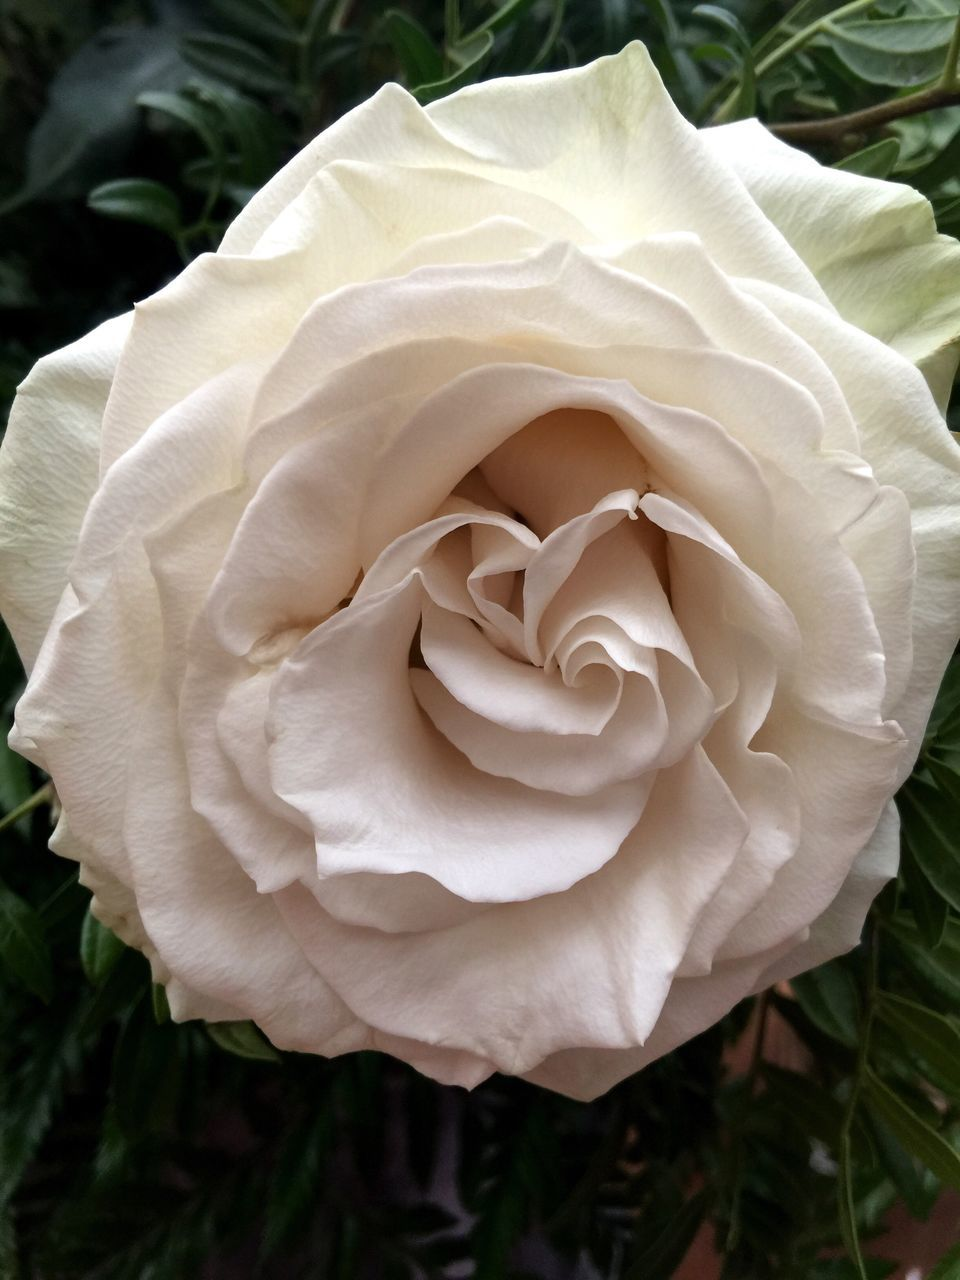 flower, petal, growth, nature, flower head, rose - flower, plant, beauty in nature, fragility, close-up, no people, freshness, outdoors, blooming, day